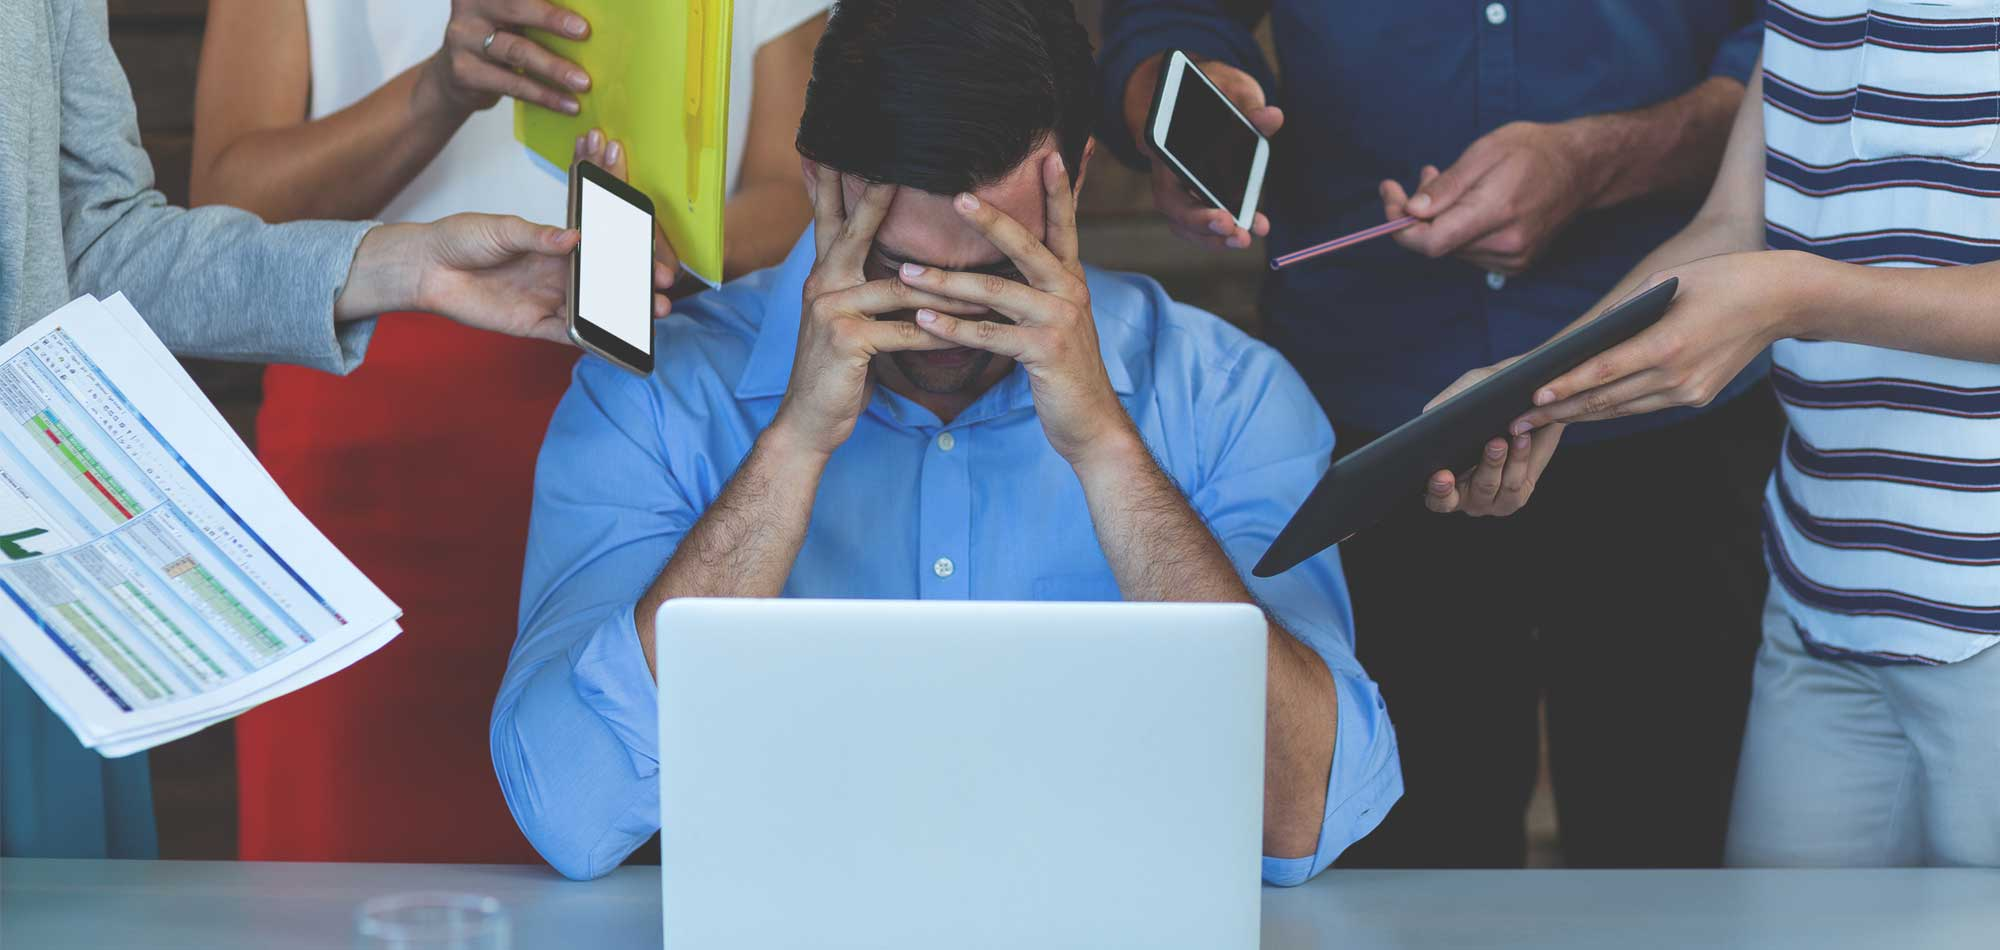 How to Avoid Complaints and Frustrated End-Users: 3 Benefits of Wi-Fi as a Service